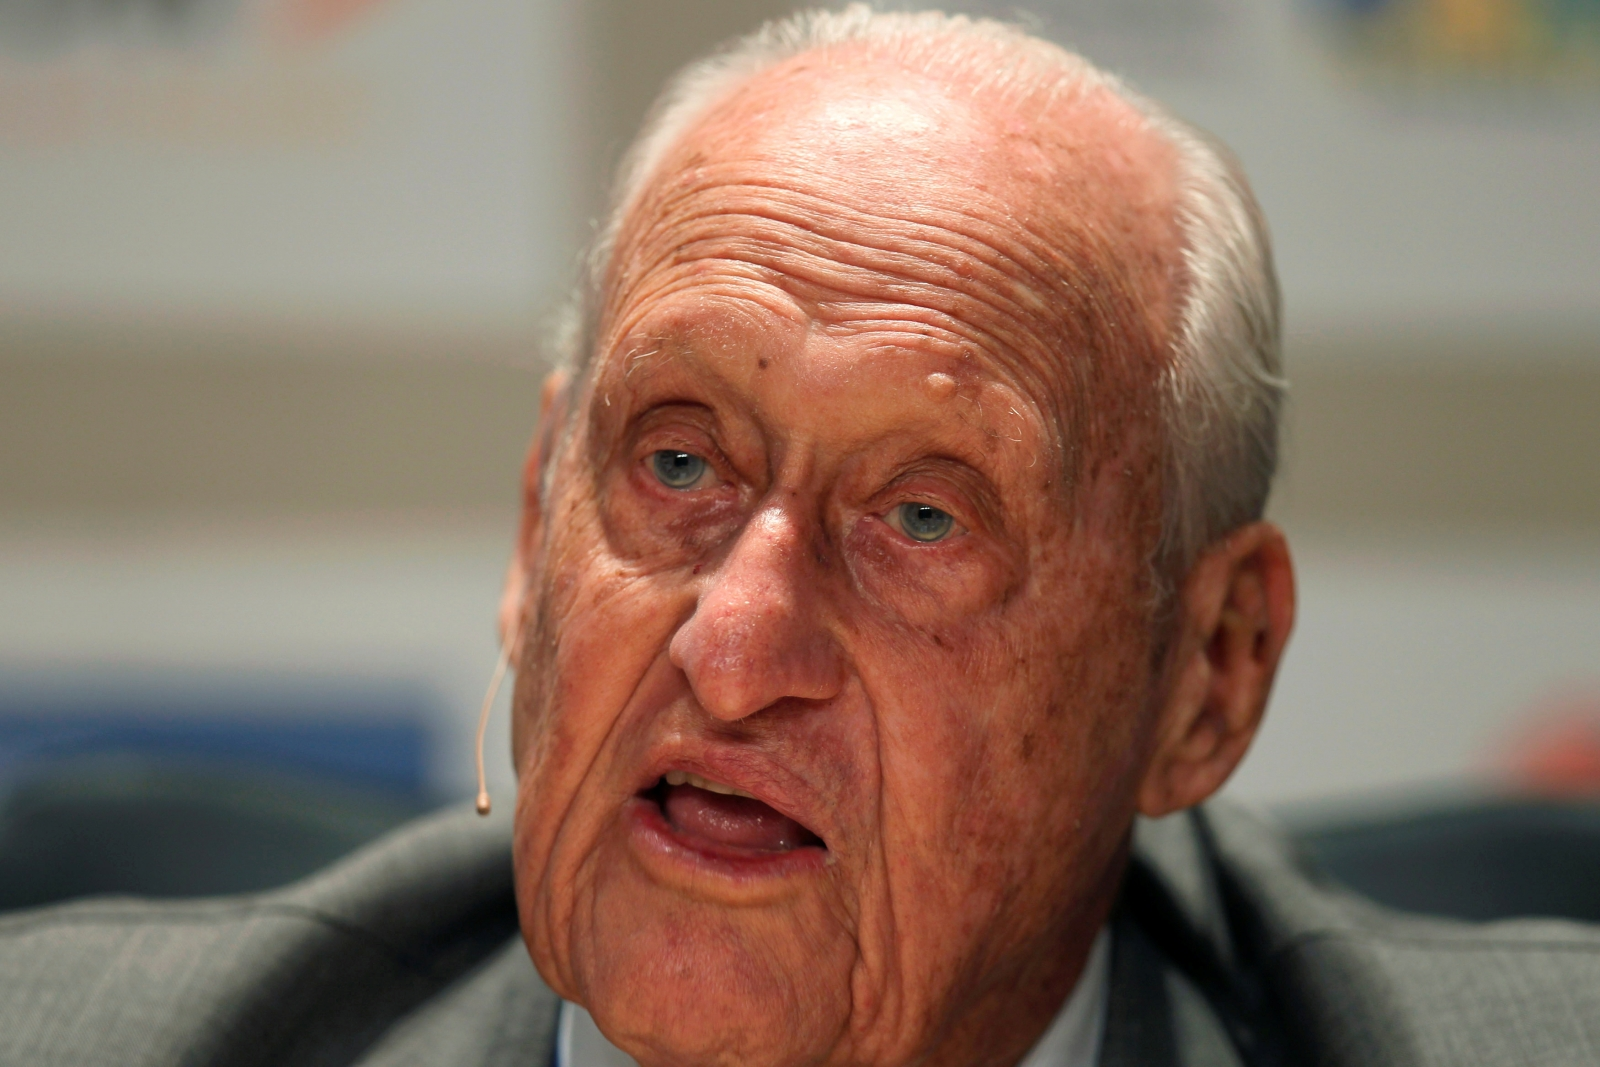 Former FIFA president Joao Havelange is dead. He died at the ripe age of 100. Havelange oversaw massive expansion of world soccer during his tenure.